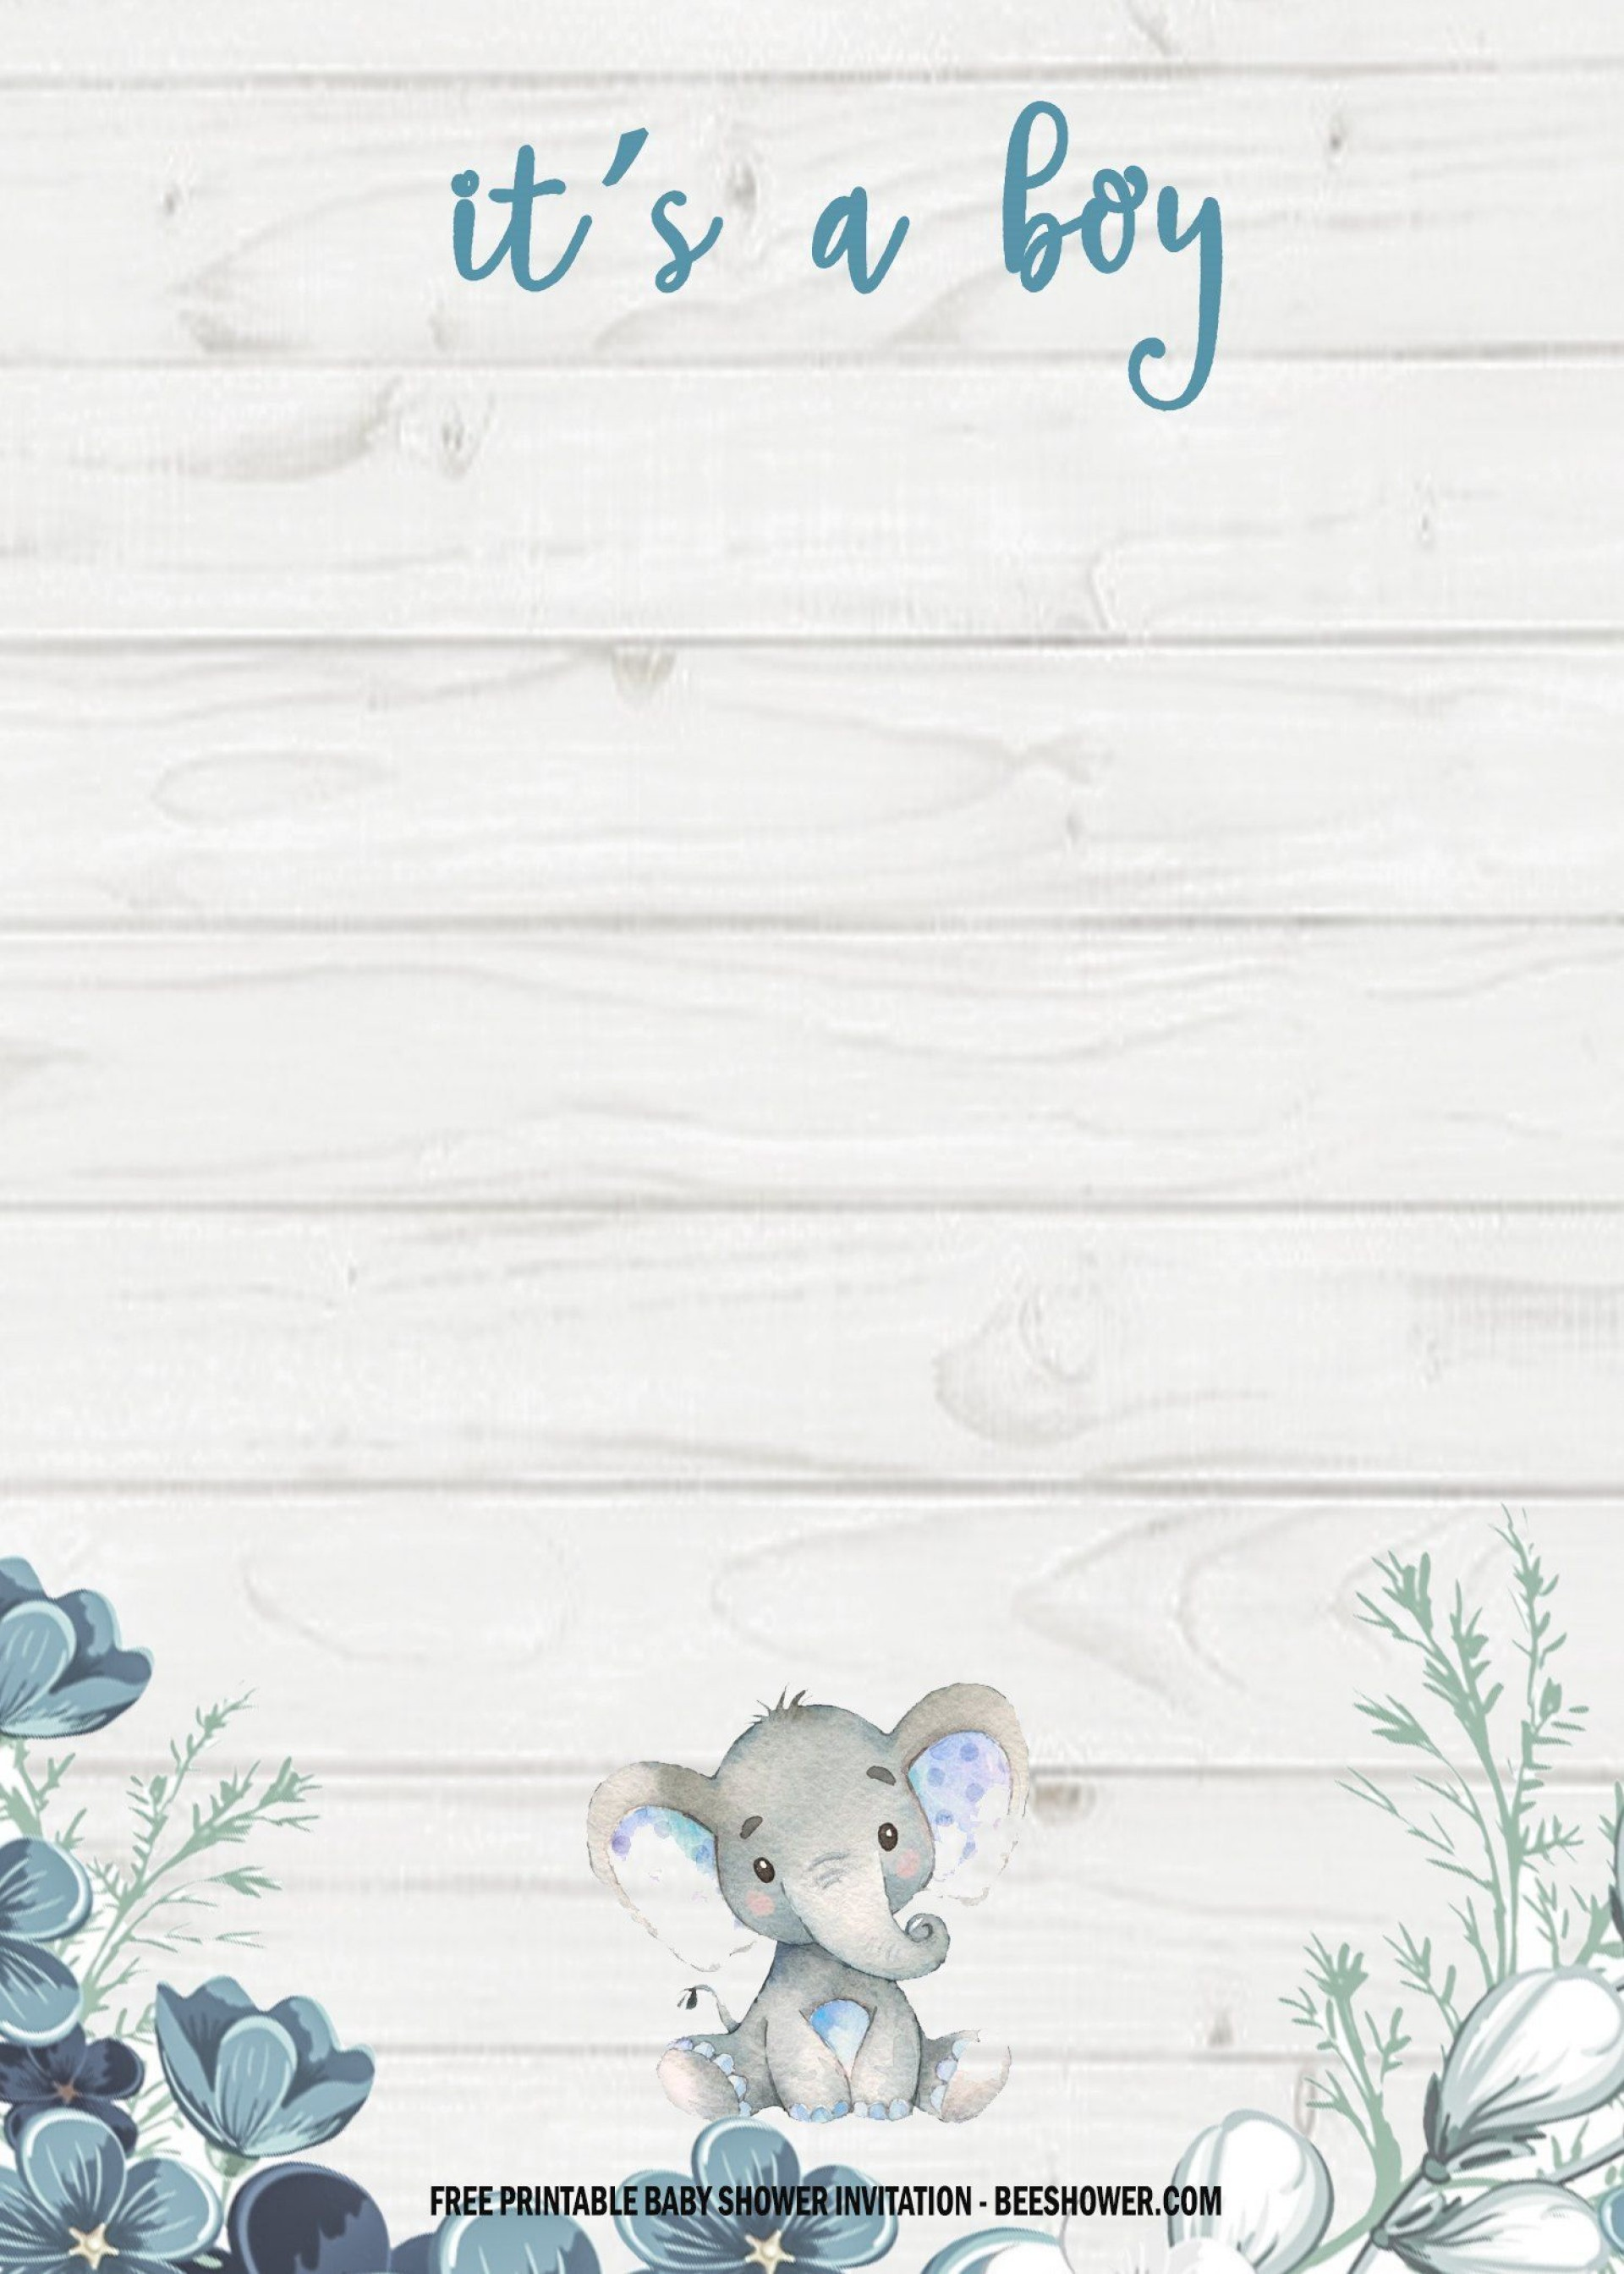 002 Stupendou Free Baby Shower Invitation Printable Boy Image  For Twin And Girl1920